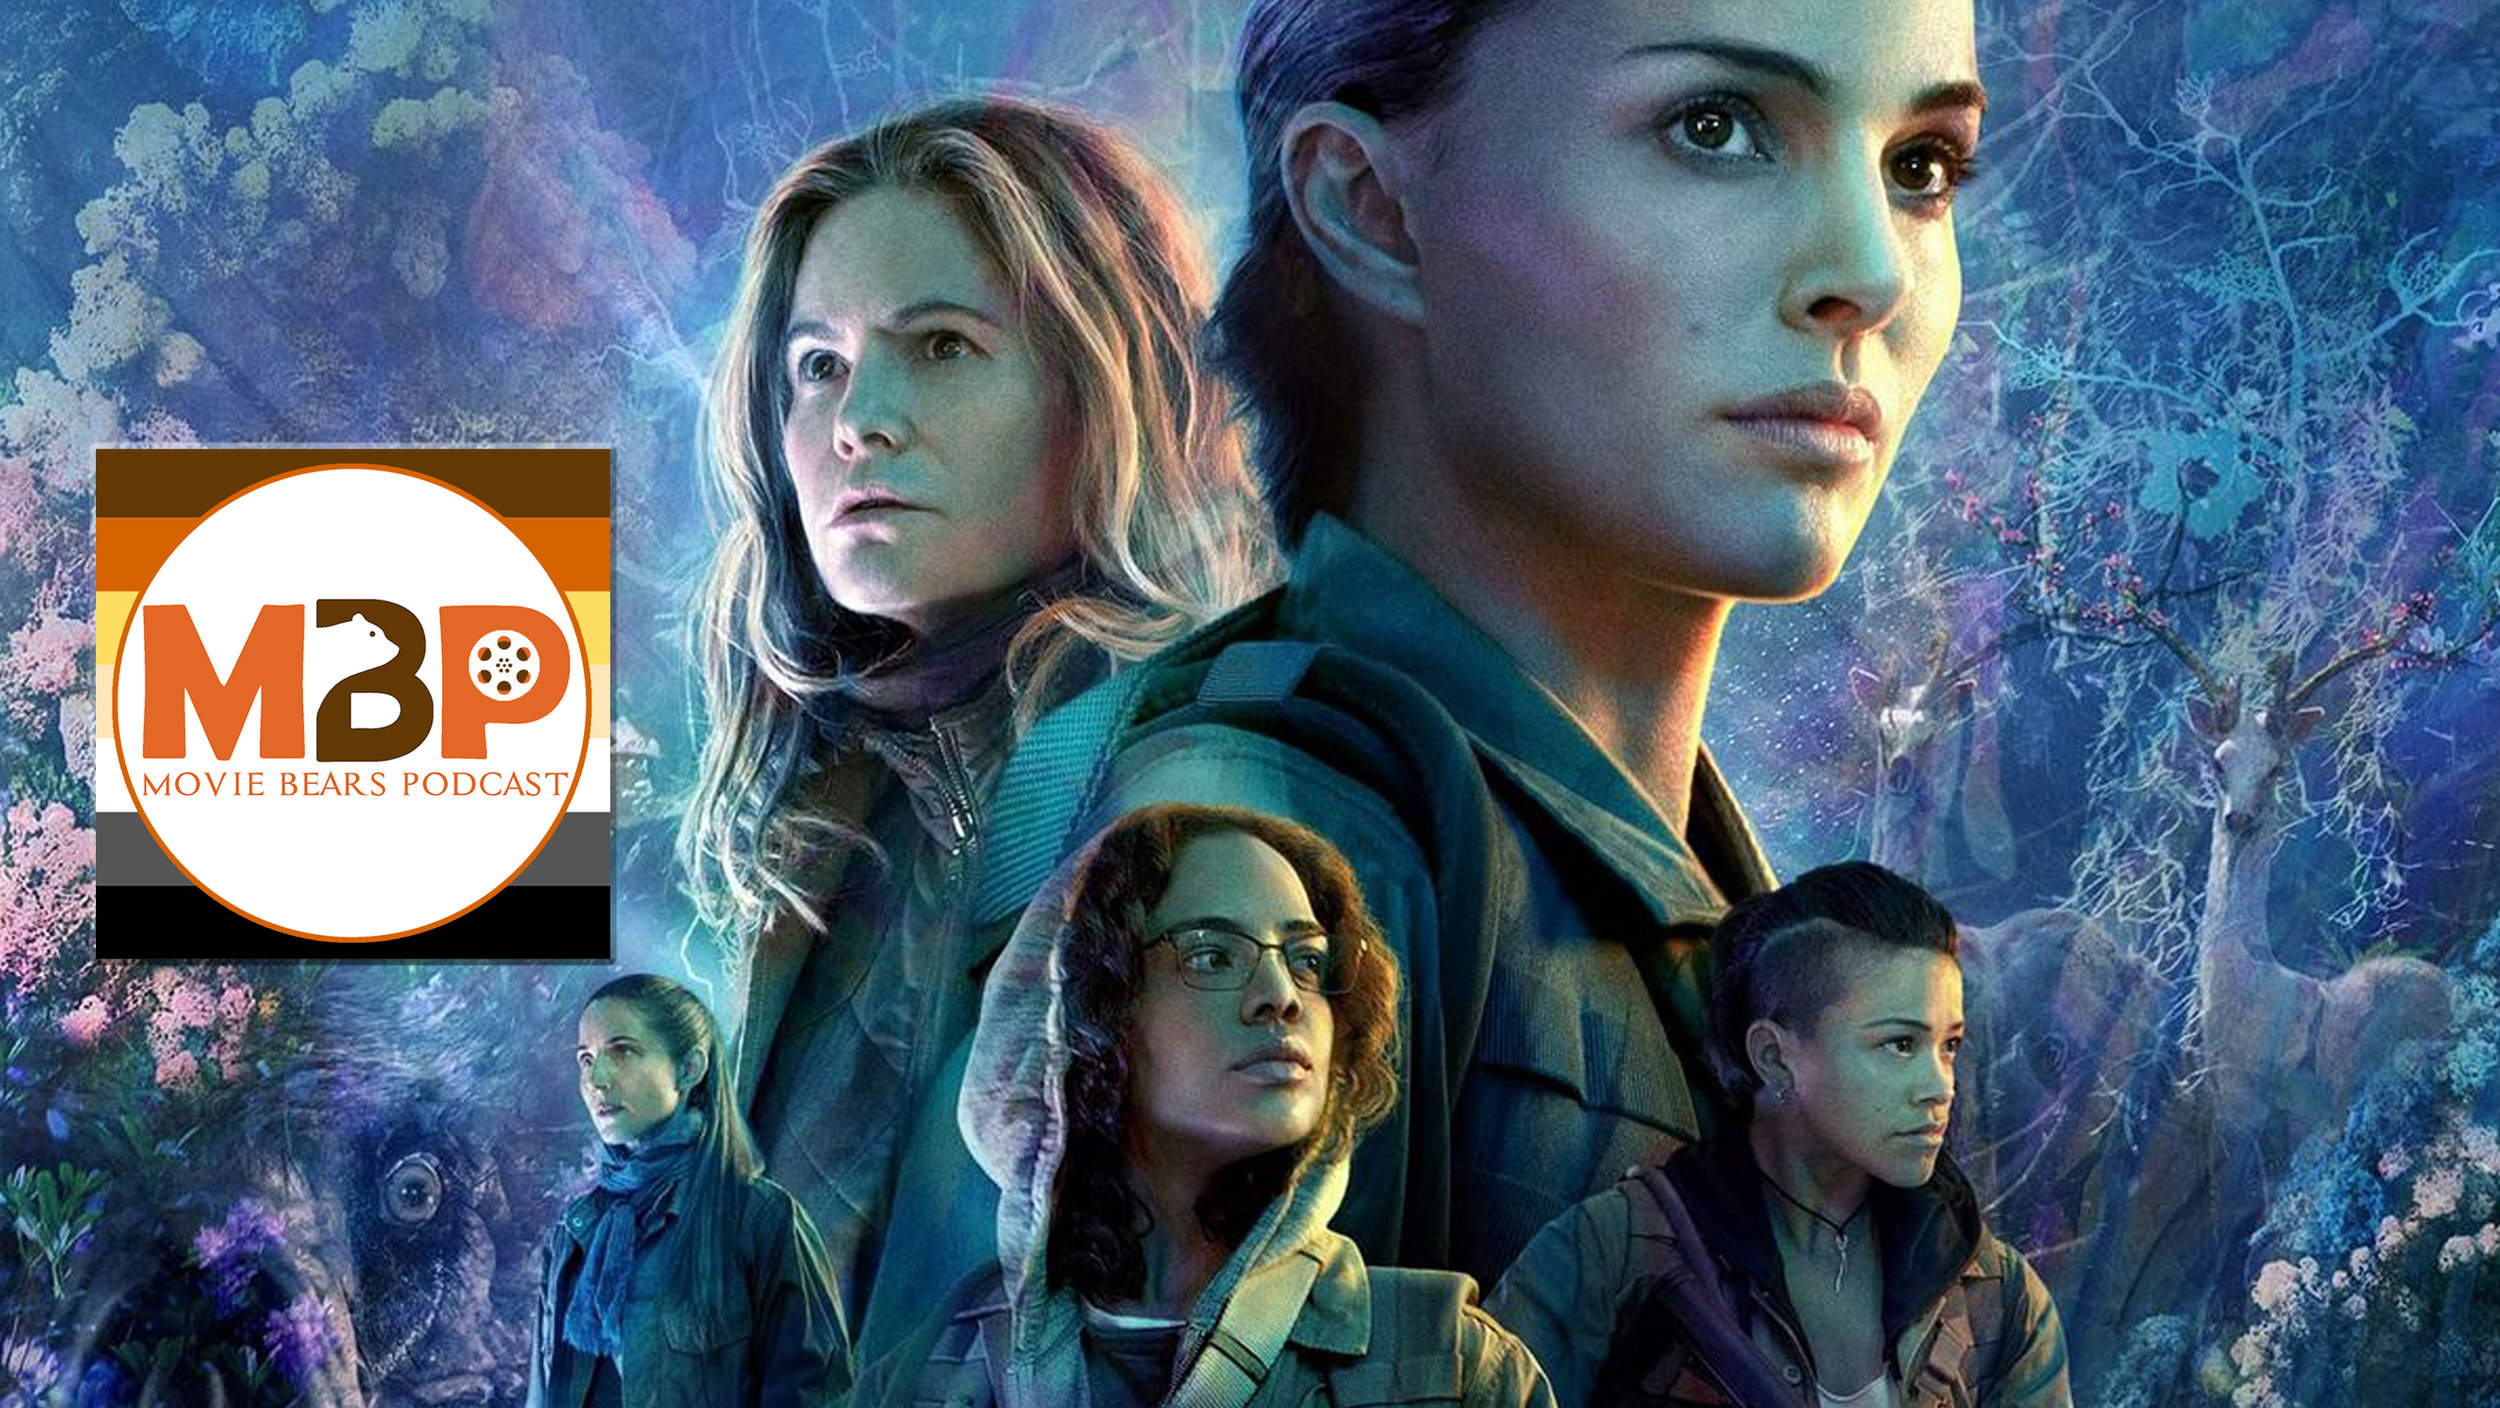 MBP e272 - 'Annihilation' (3/1/18)    Are you ready for some new, heady sci-fi? We sure are! This week, we give our review of 'Annihilation,' the new release by writer/director Alex Garland ('Ex Machina') and starring Natalie Portman. We've got a lot to say, so have a listen and let us know what you think in comments or a review on iTunes!